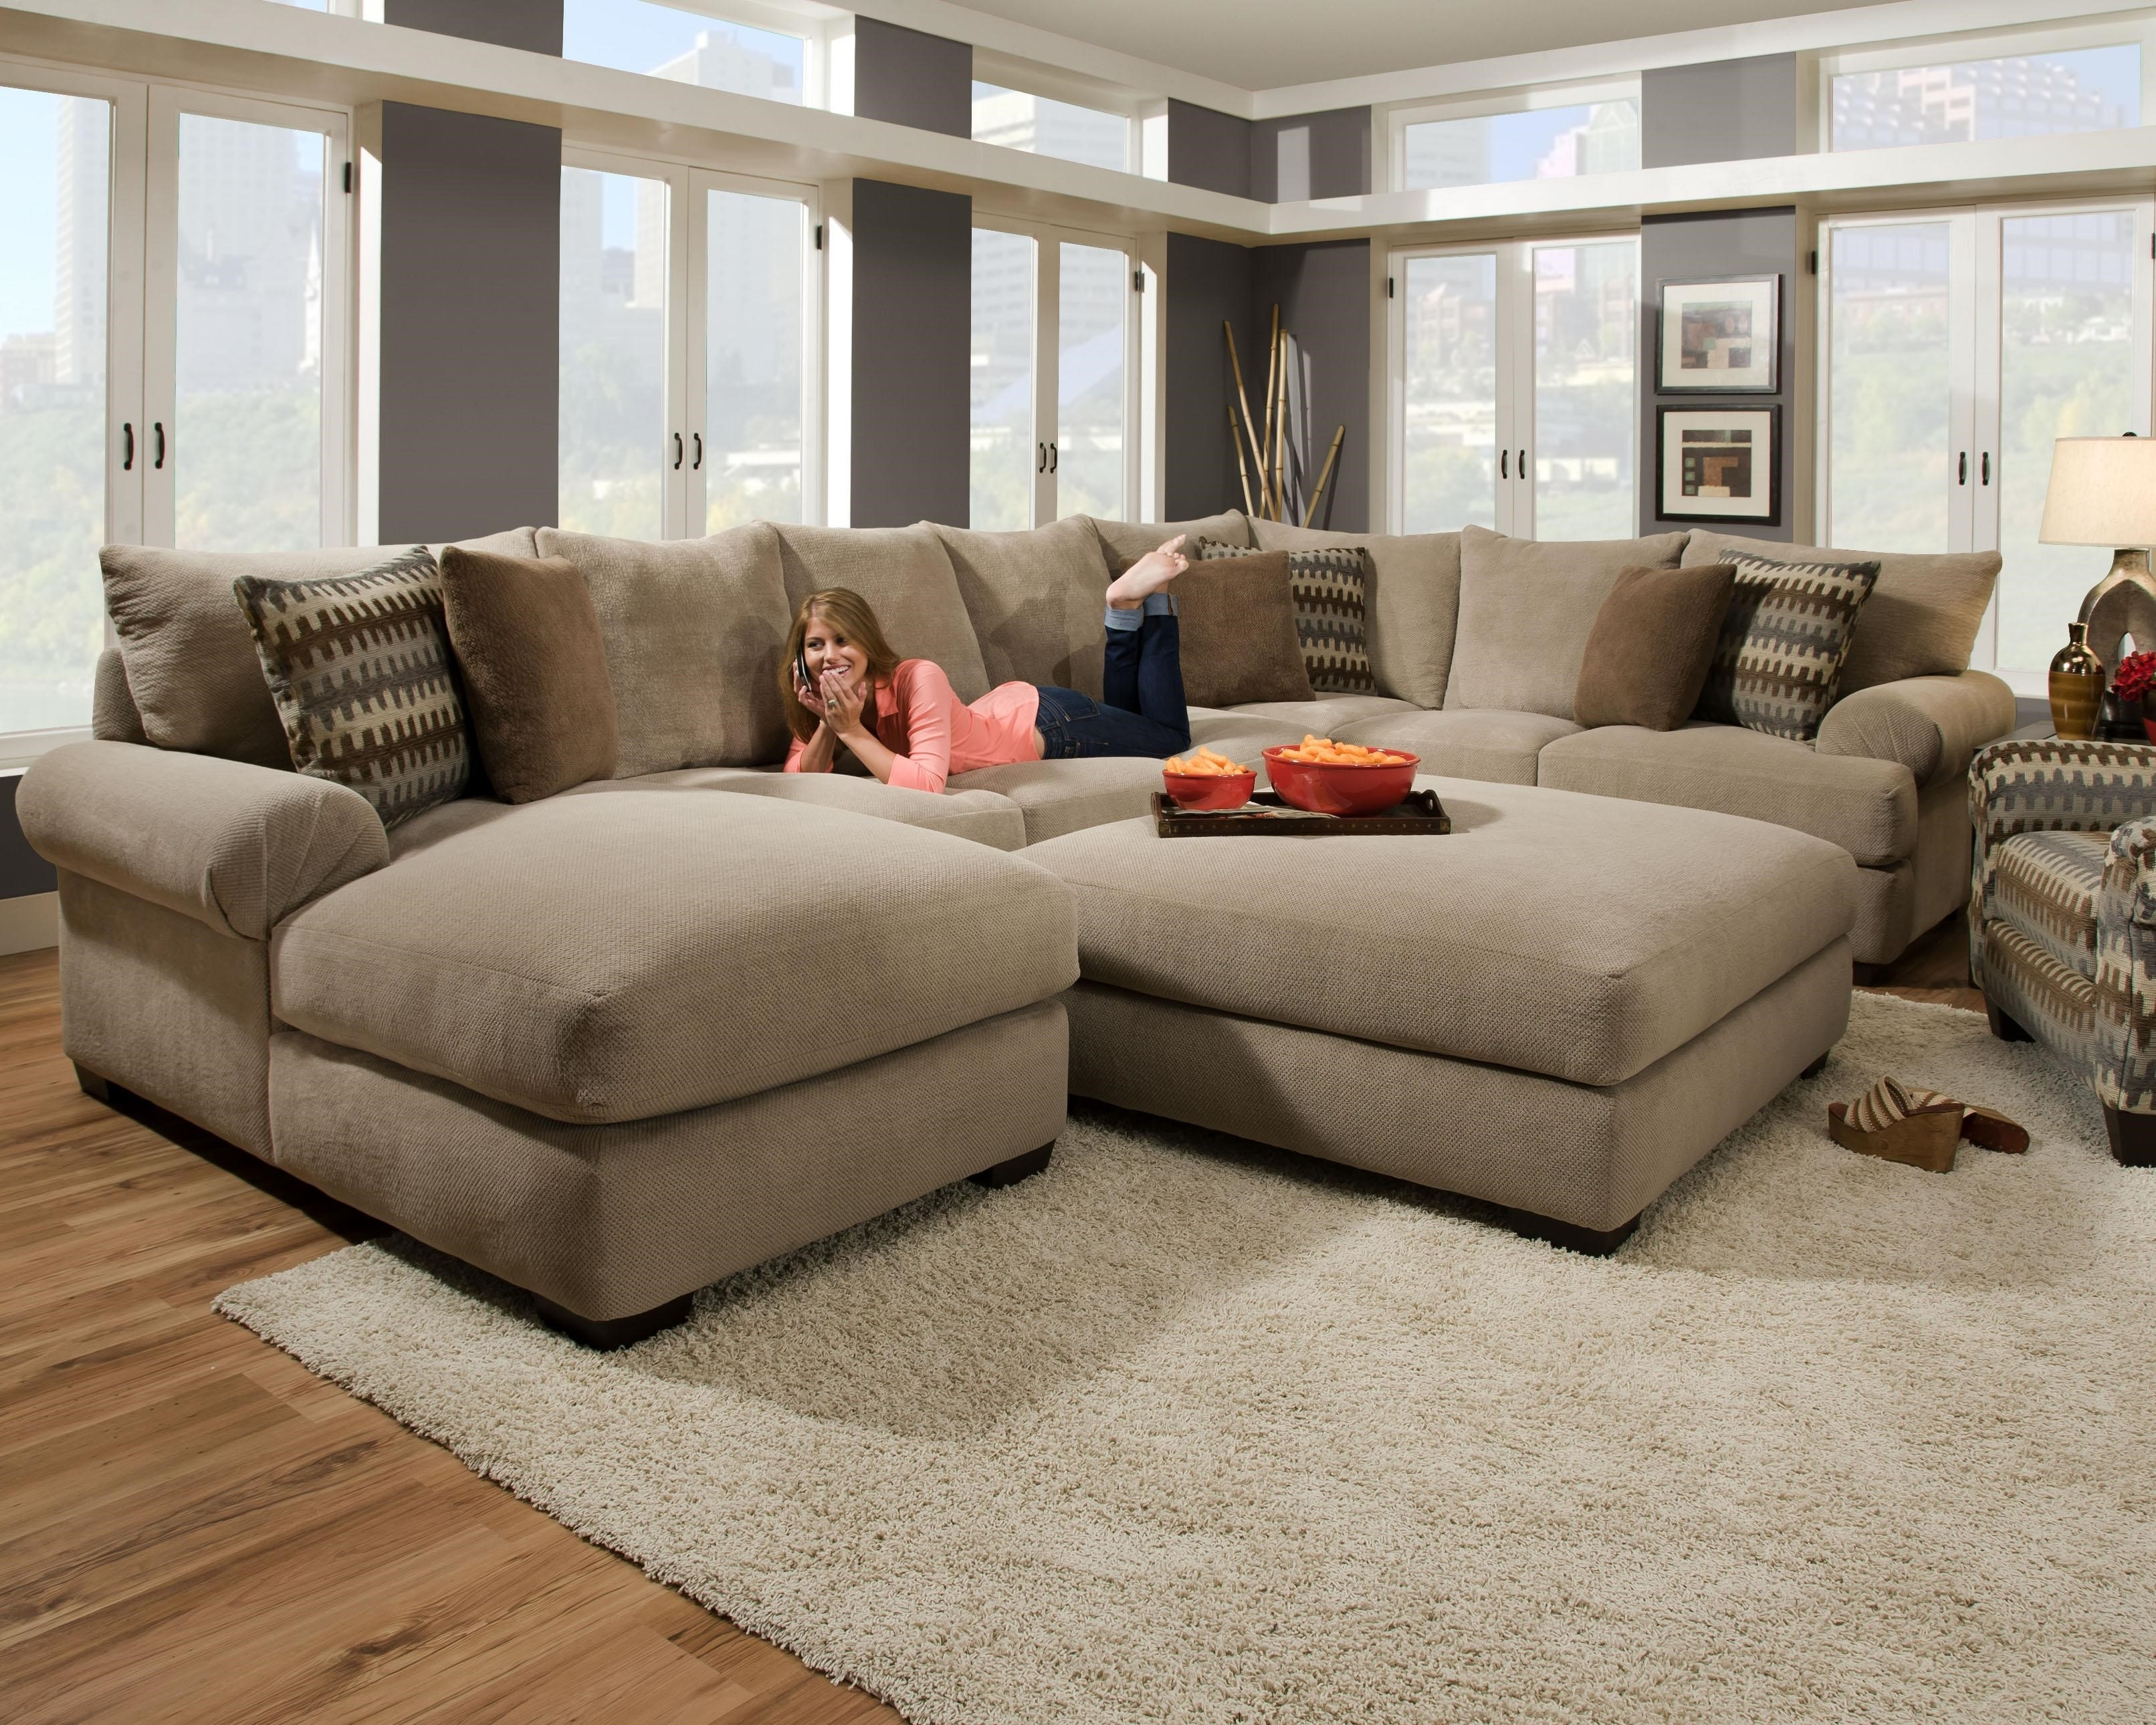 Well Known Trend Large Sectional Sofa 96 On Sofa Room Ideas With Large Throughout Large Sectional Sofas (View 14 of 15)